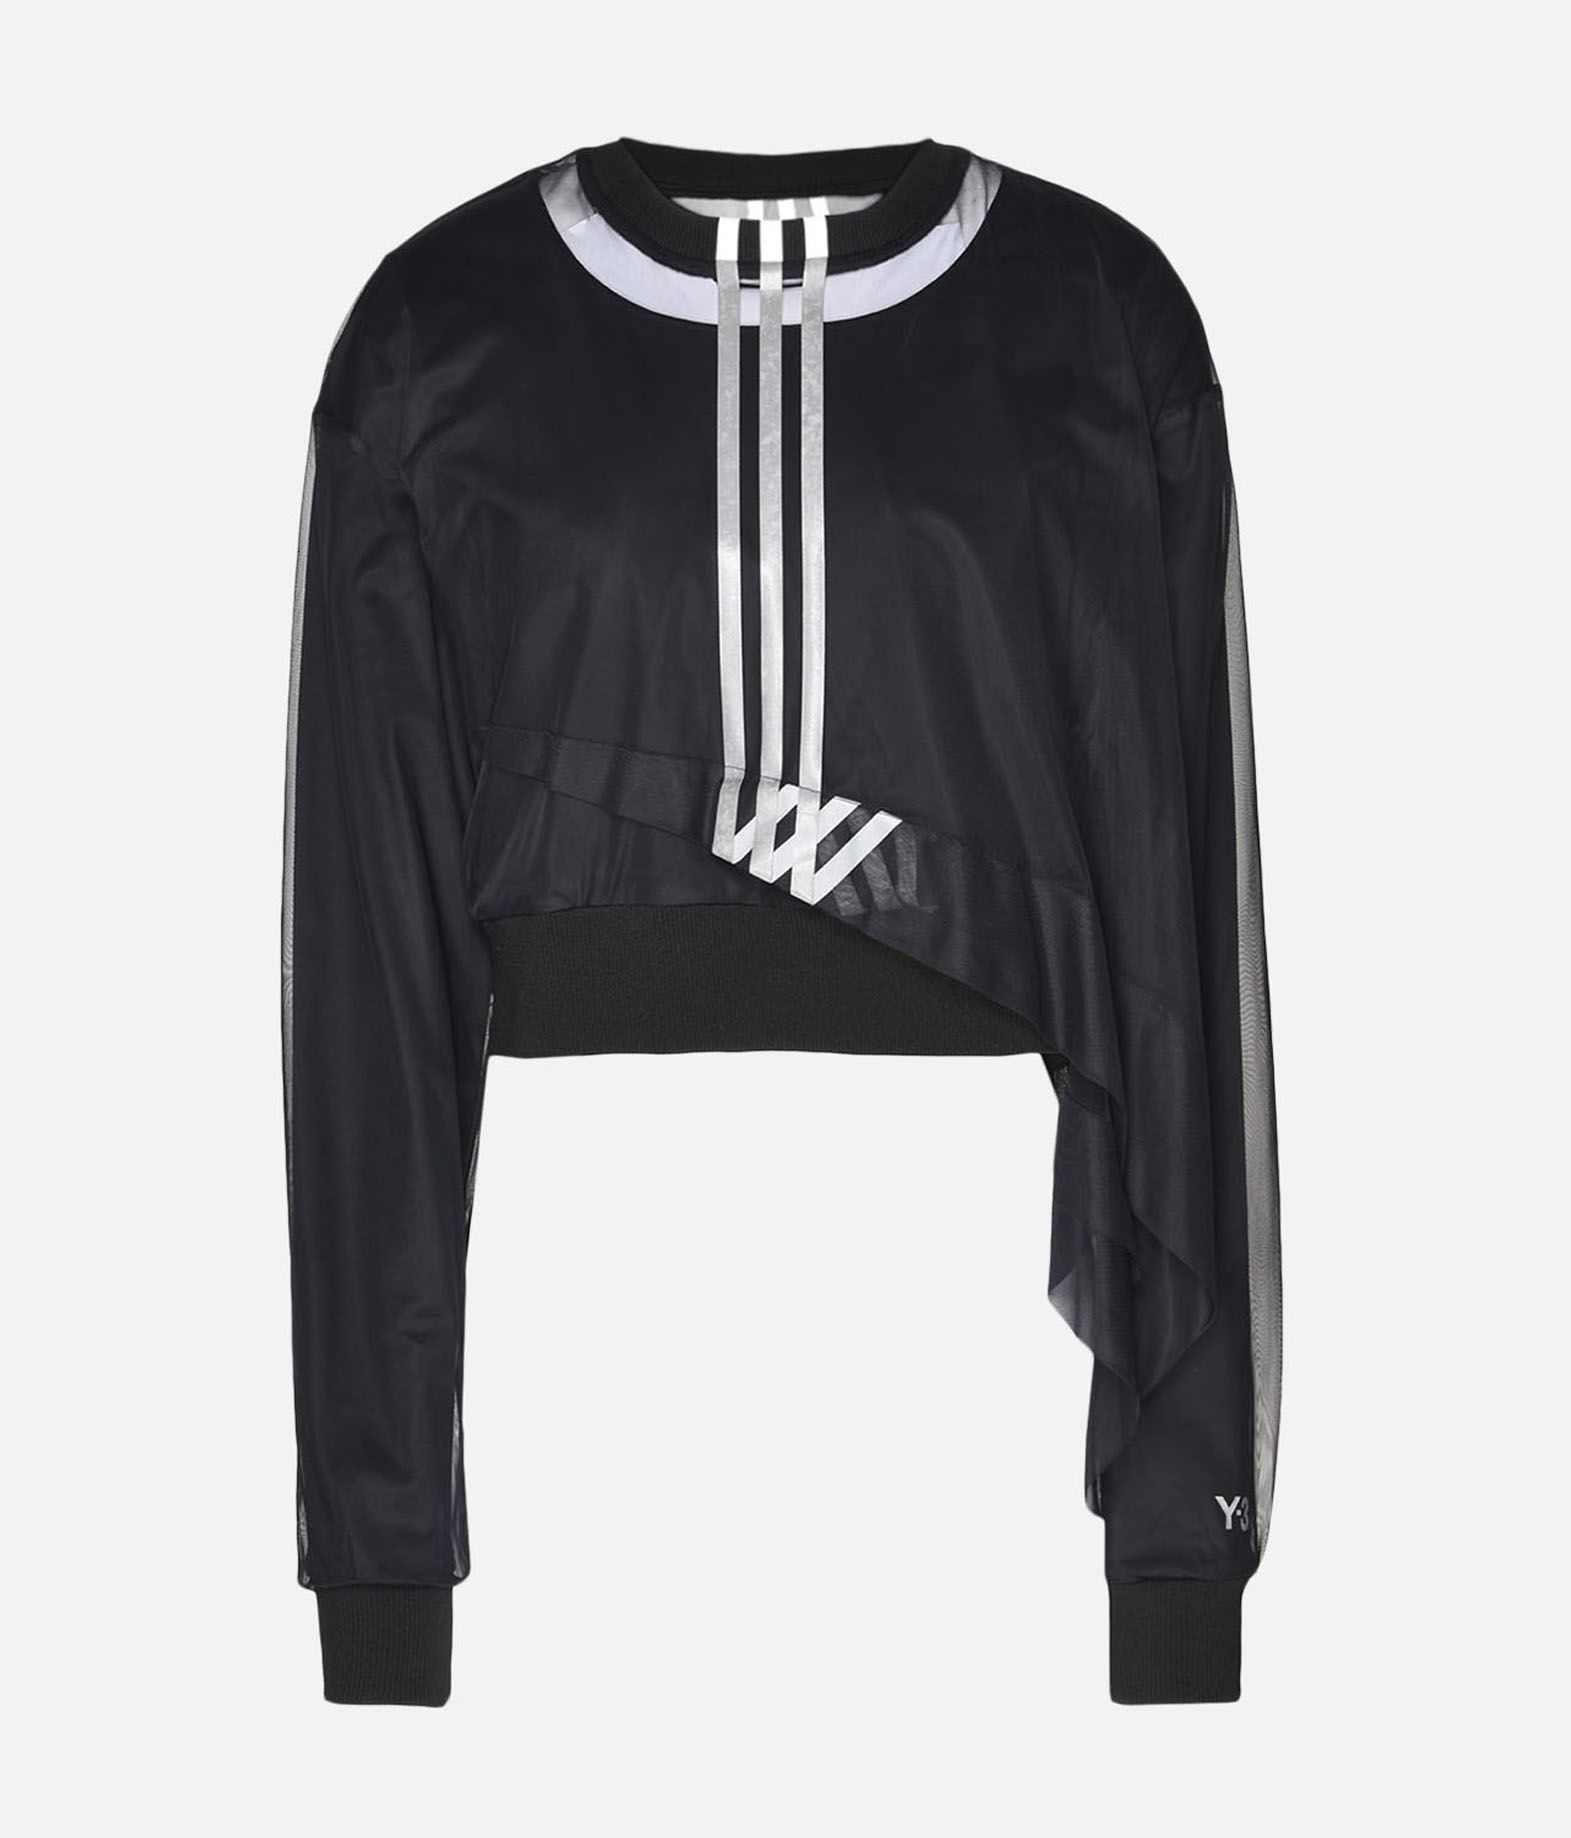 Y-3 Y-3 3-Stripes Mesh Cropped Tee Long sleeve t-shirt Woman f